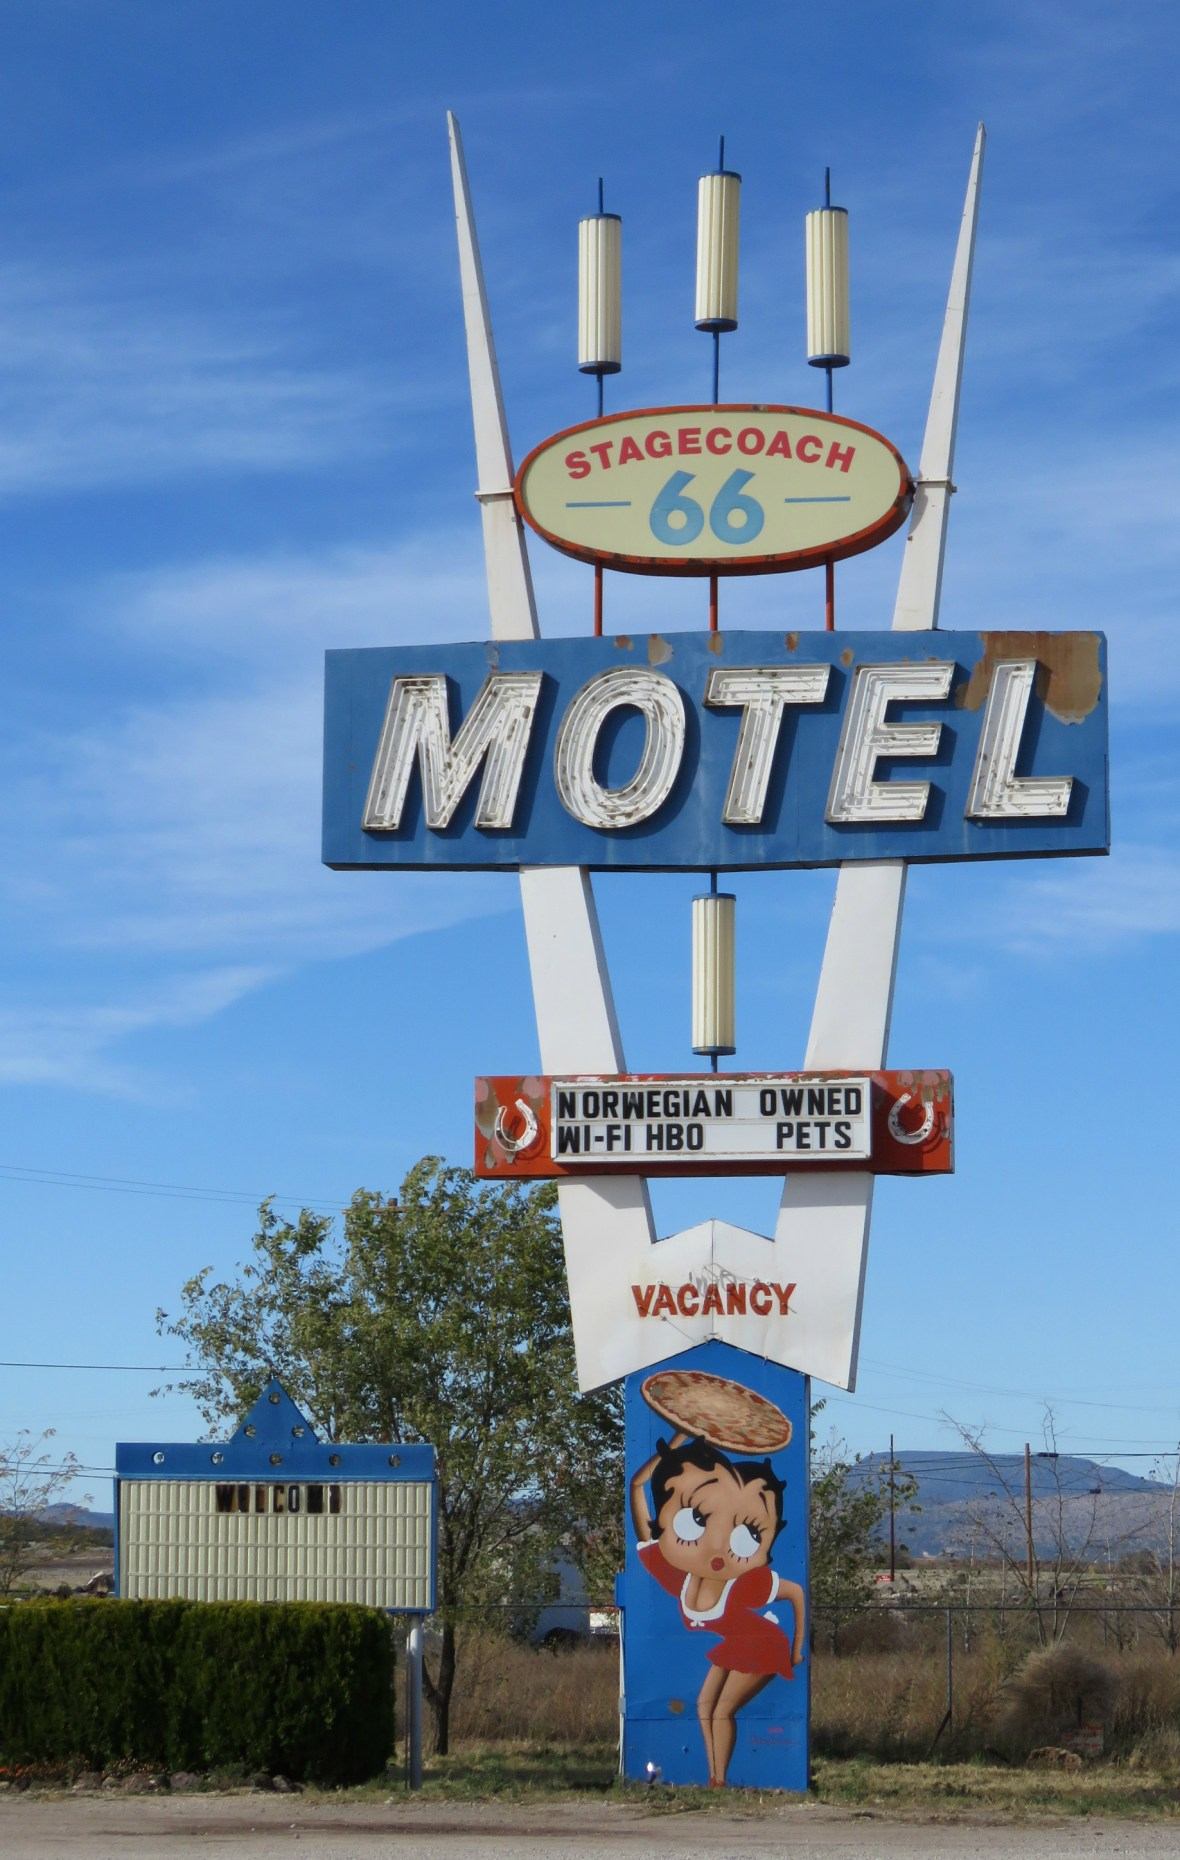 Stagecoach 66 Motel and The Pizza Joint - 639 Chino Street, Seligman, Arizona U.S.A. - November 9, 2015